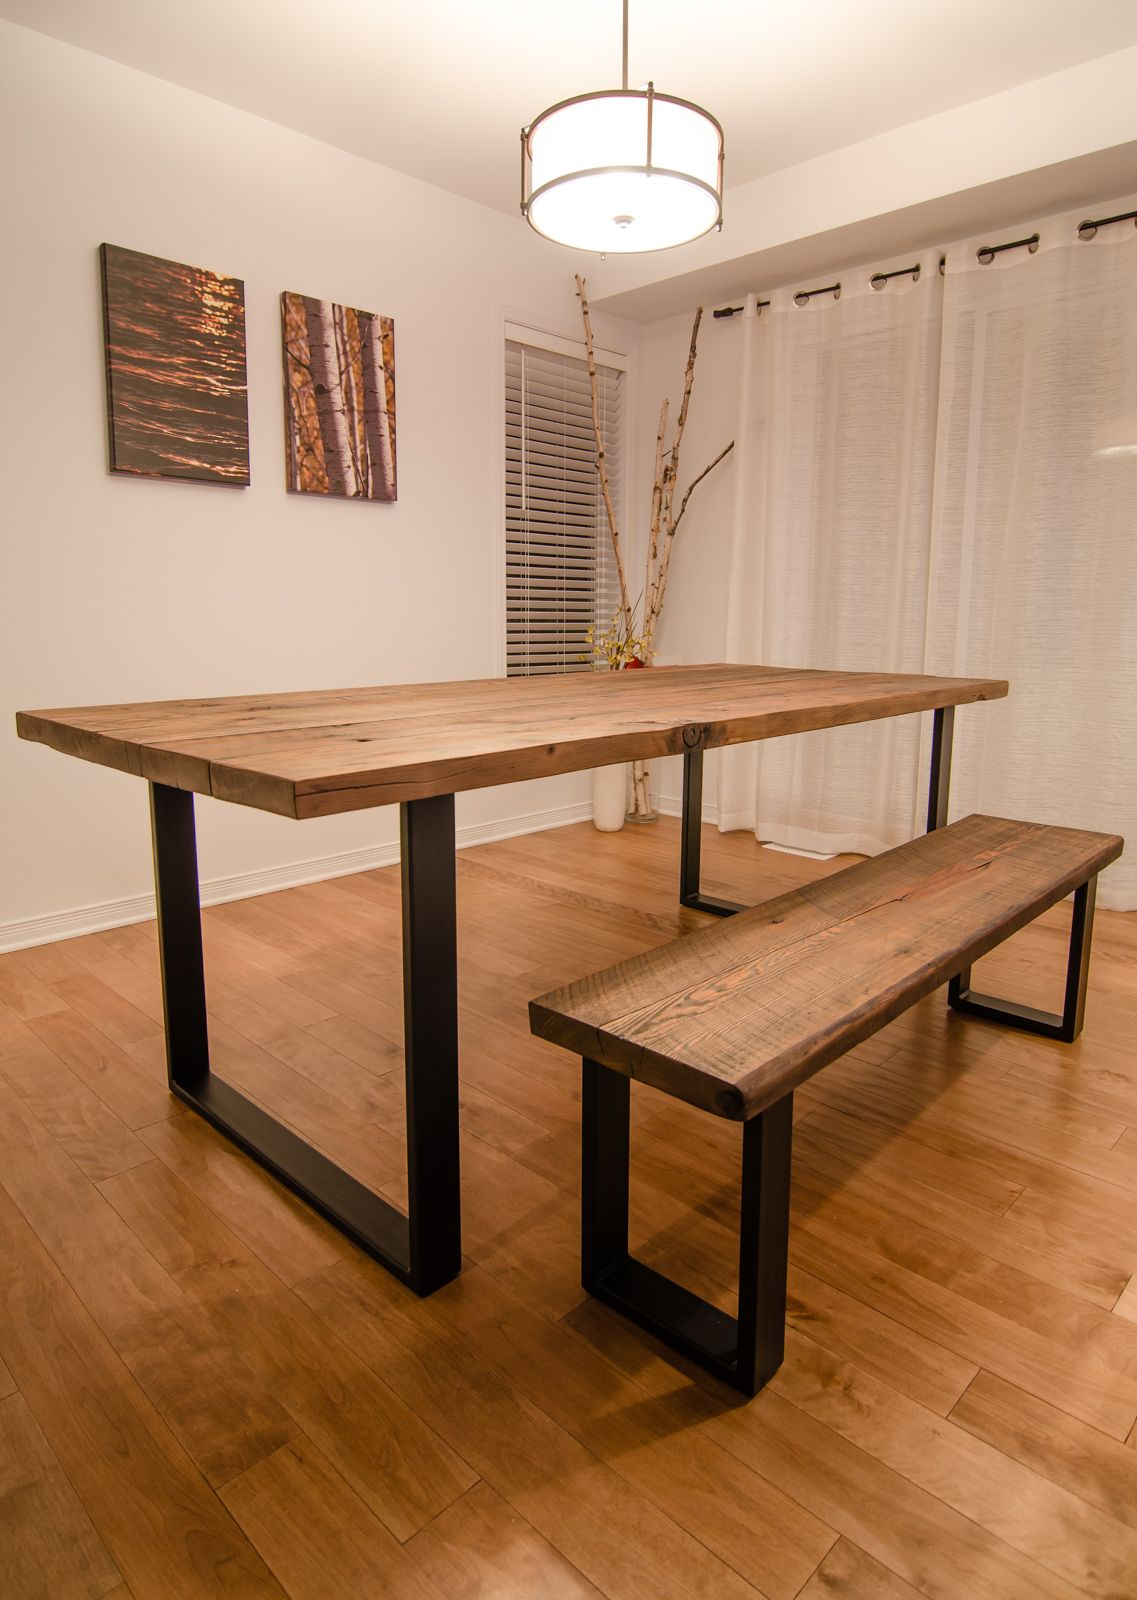 Reclaimed Wood Amp Steel U Shape Table And Bench Ideas For